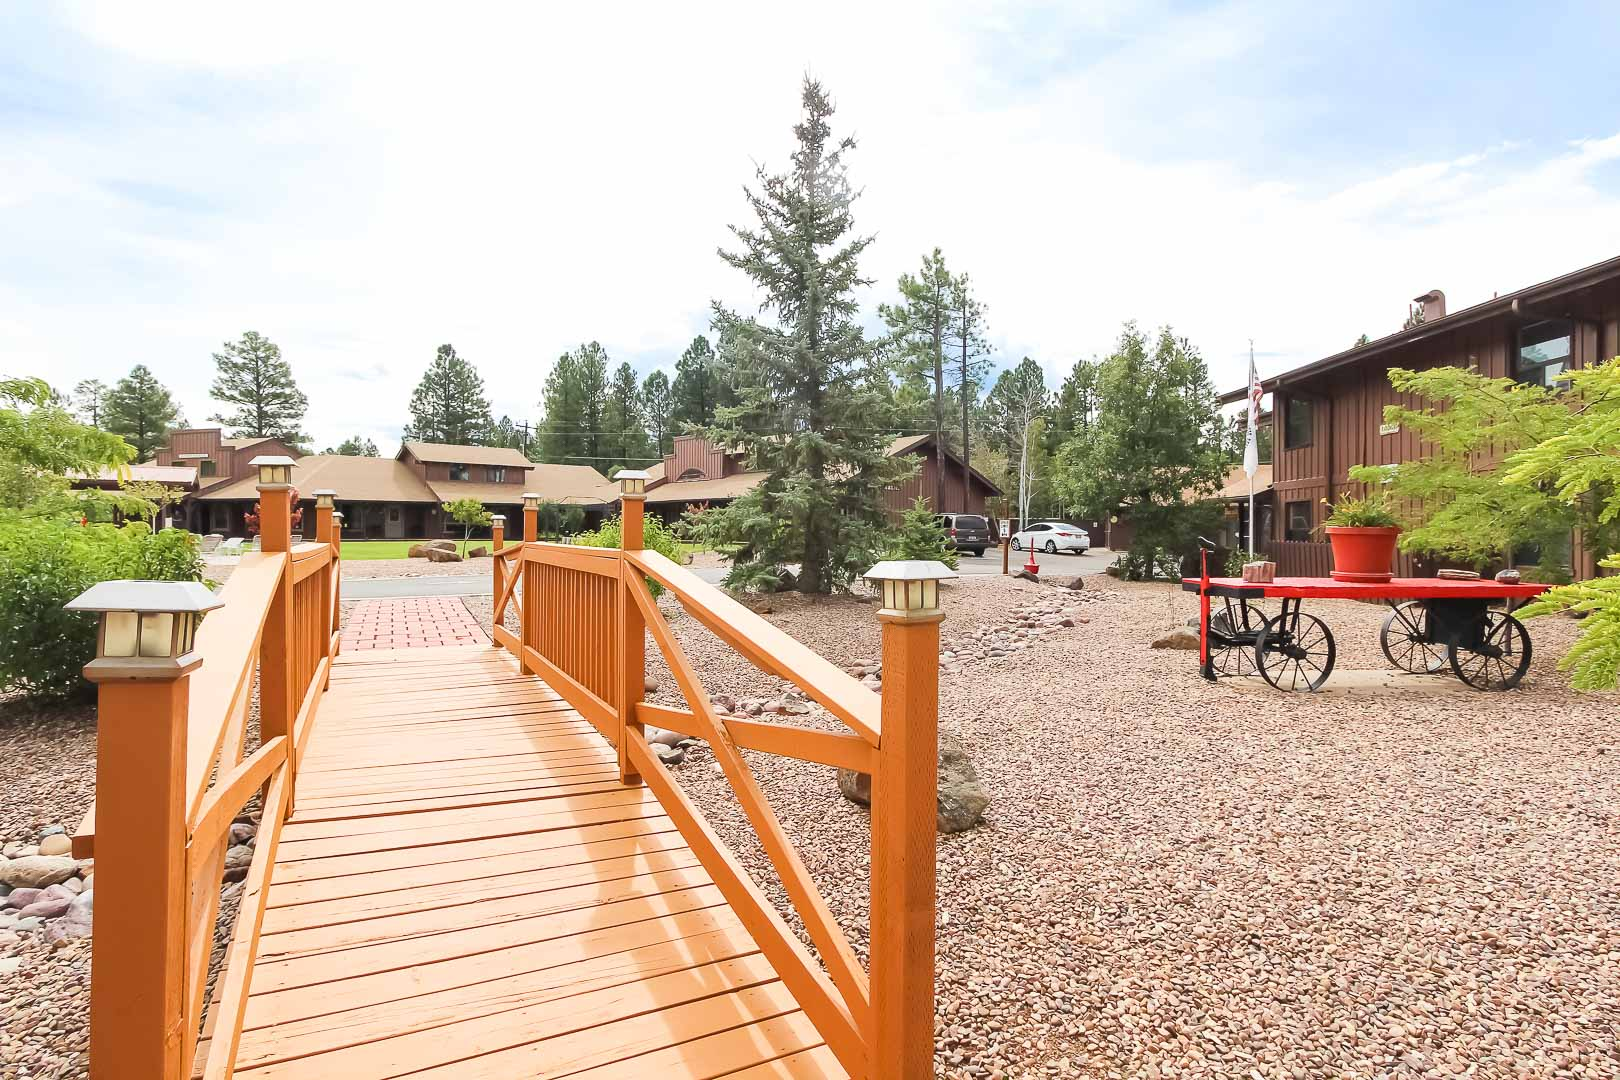 A welcoming entrance at VRI's Roundhouse Resort in Pinetop, Arizona.